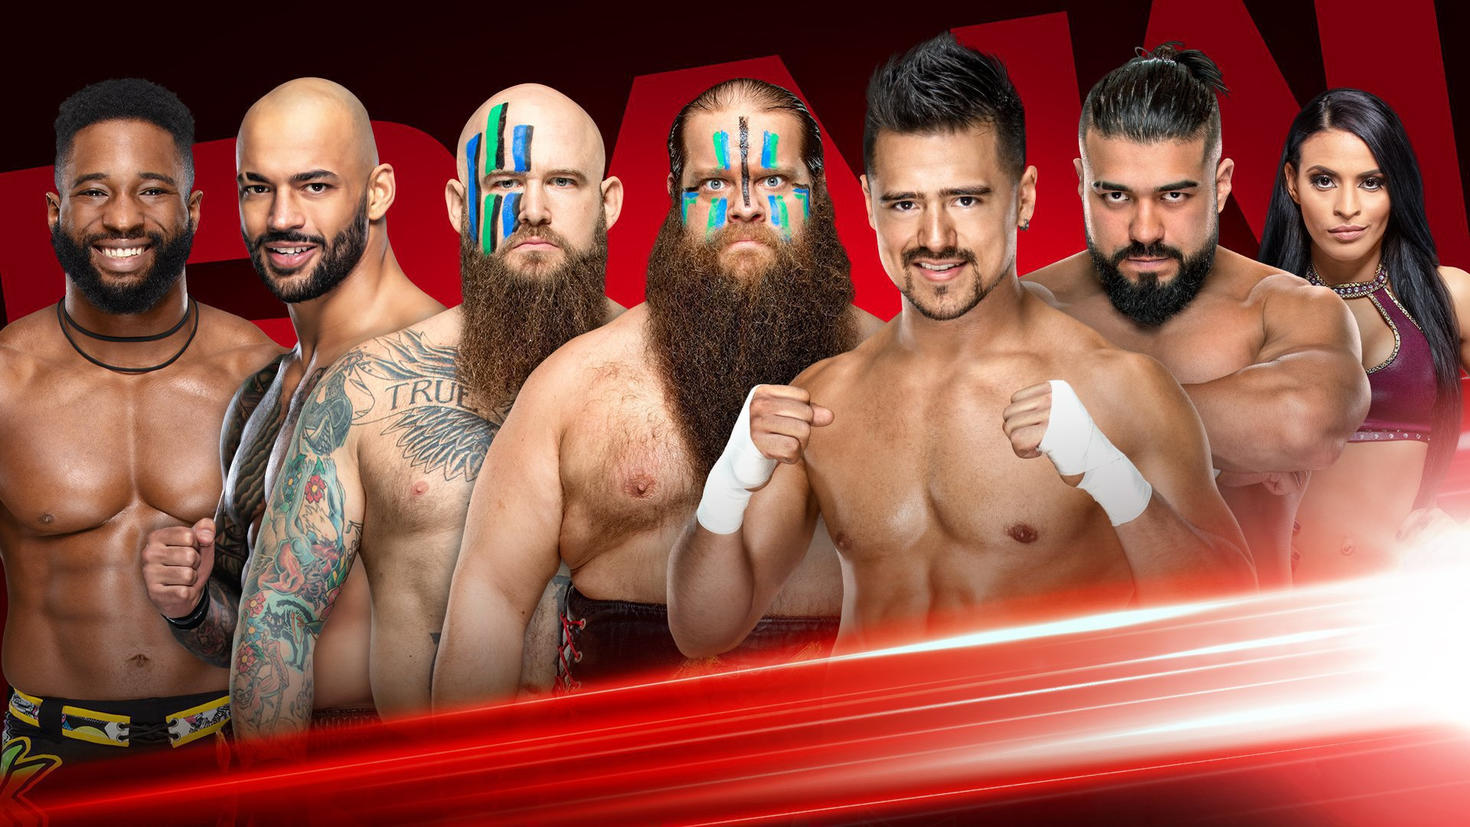 WWE Raw Preview (27/07/20): Drew McIntyre vs Dolph Ziggler; Sasha Banks vs Asuka 2